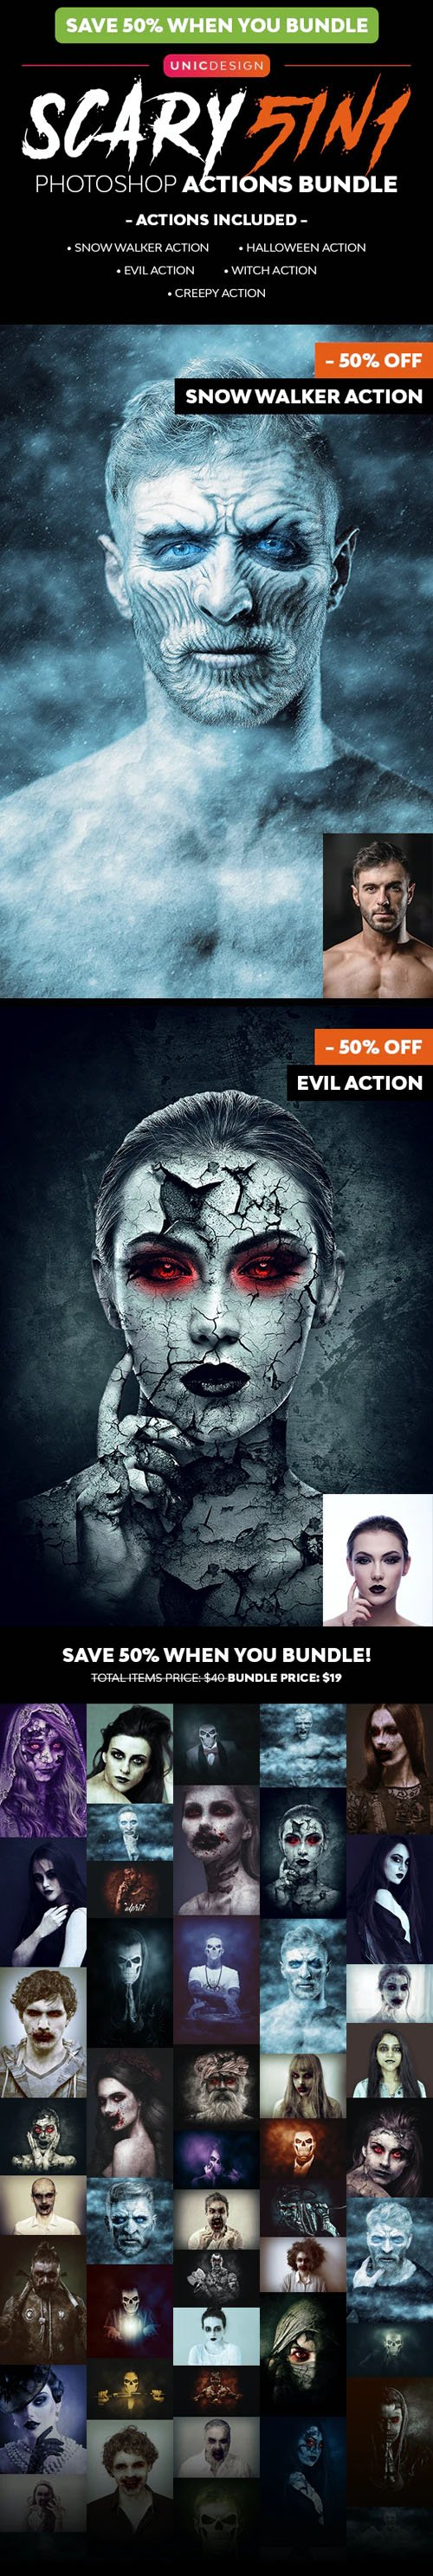 5in1 - Scary Photoshop Actions Bundle